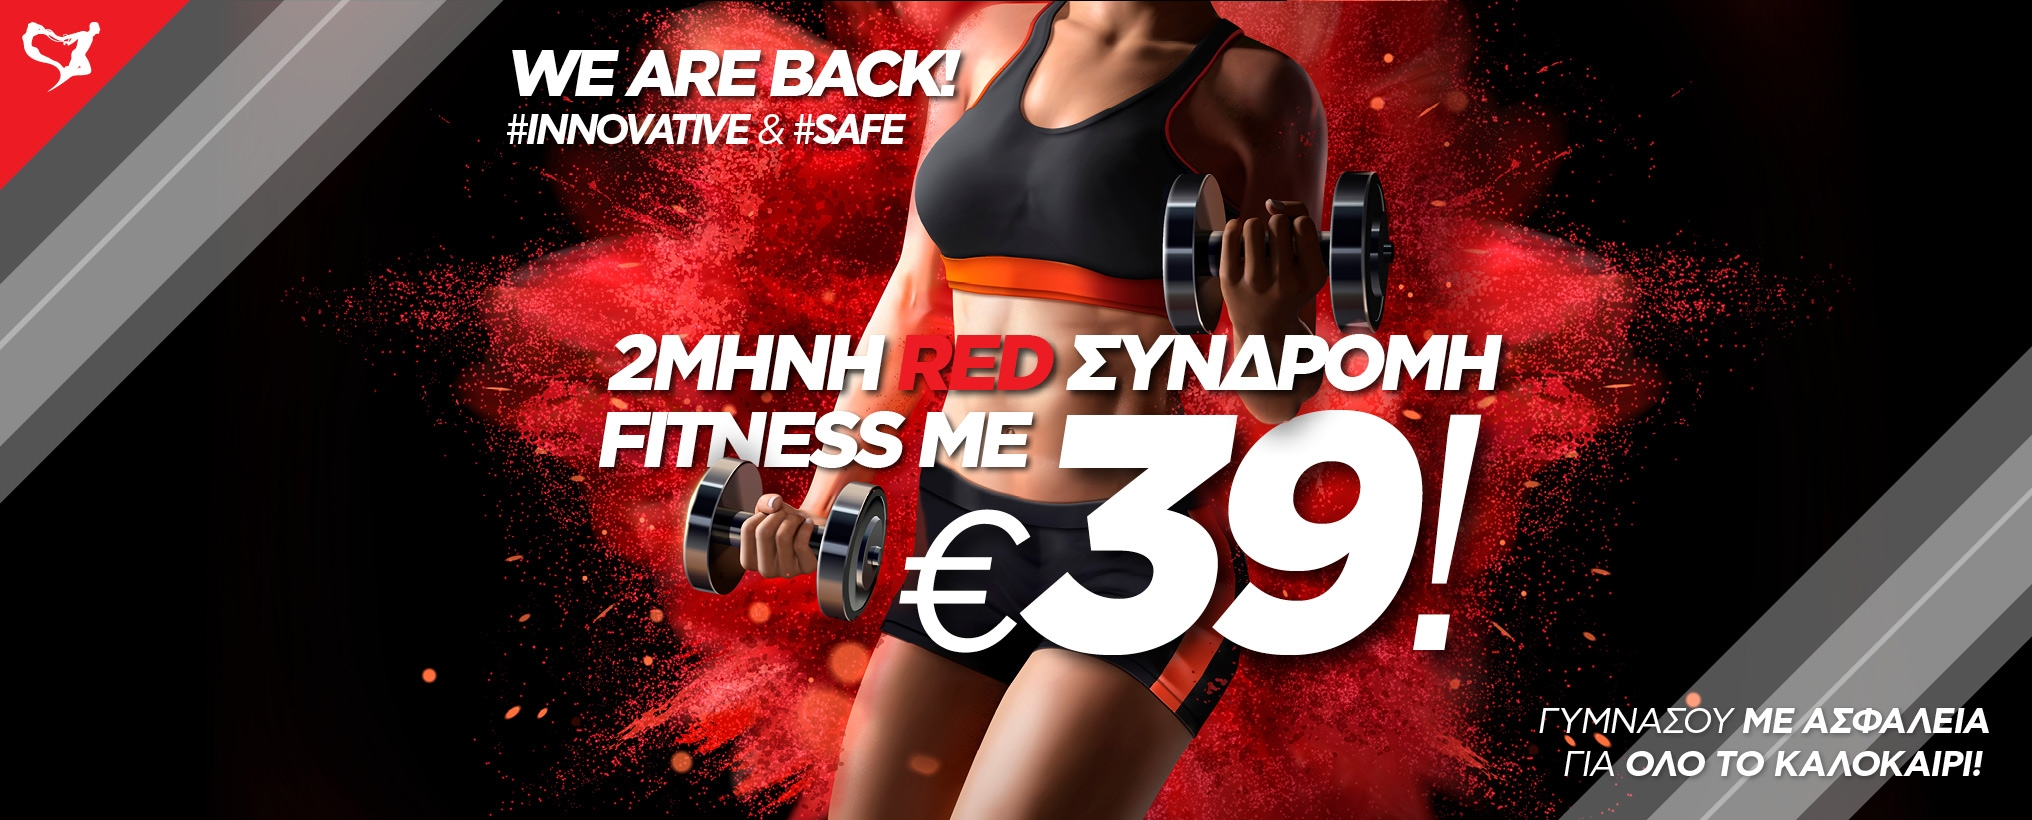 We are Back! RED συνδρομή μόνο με 39€!